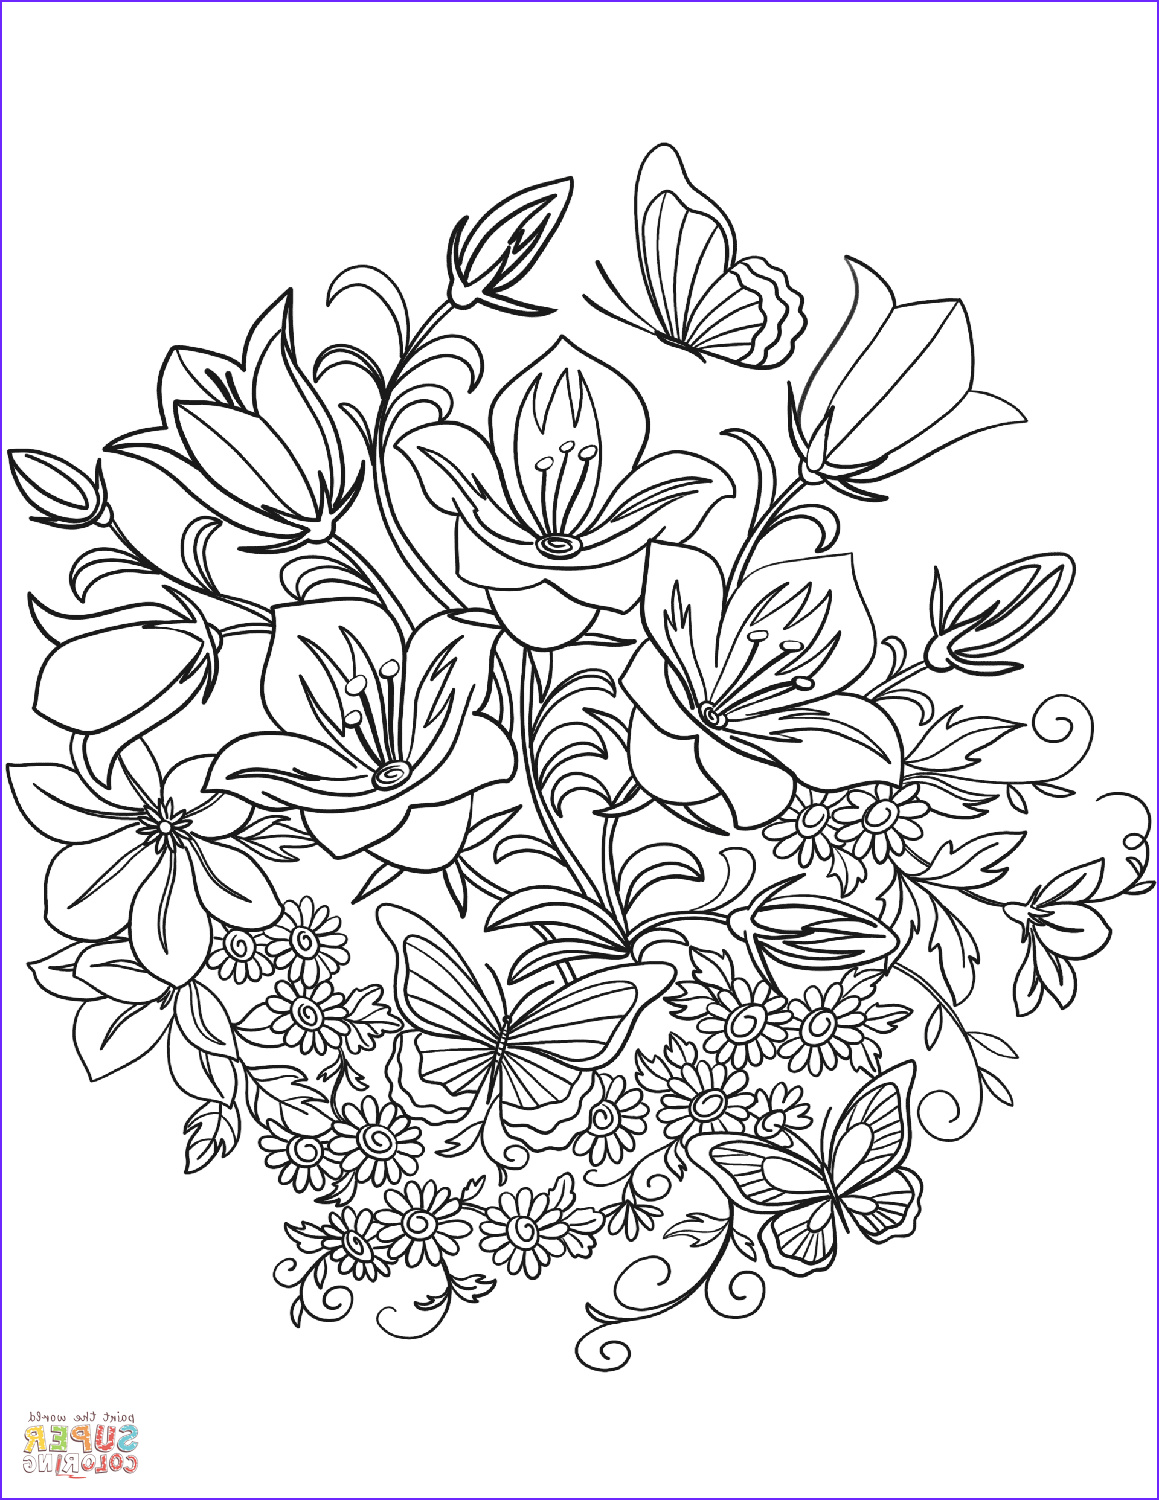 Printable Coloring Pages Of Flowers and butterflies Beautiful Photos butterfly and Flowers Coloring Page